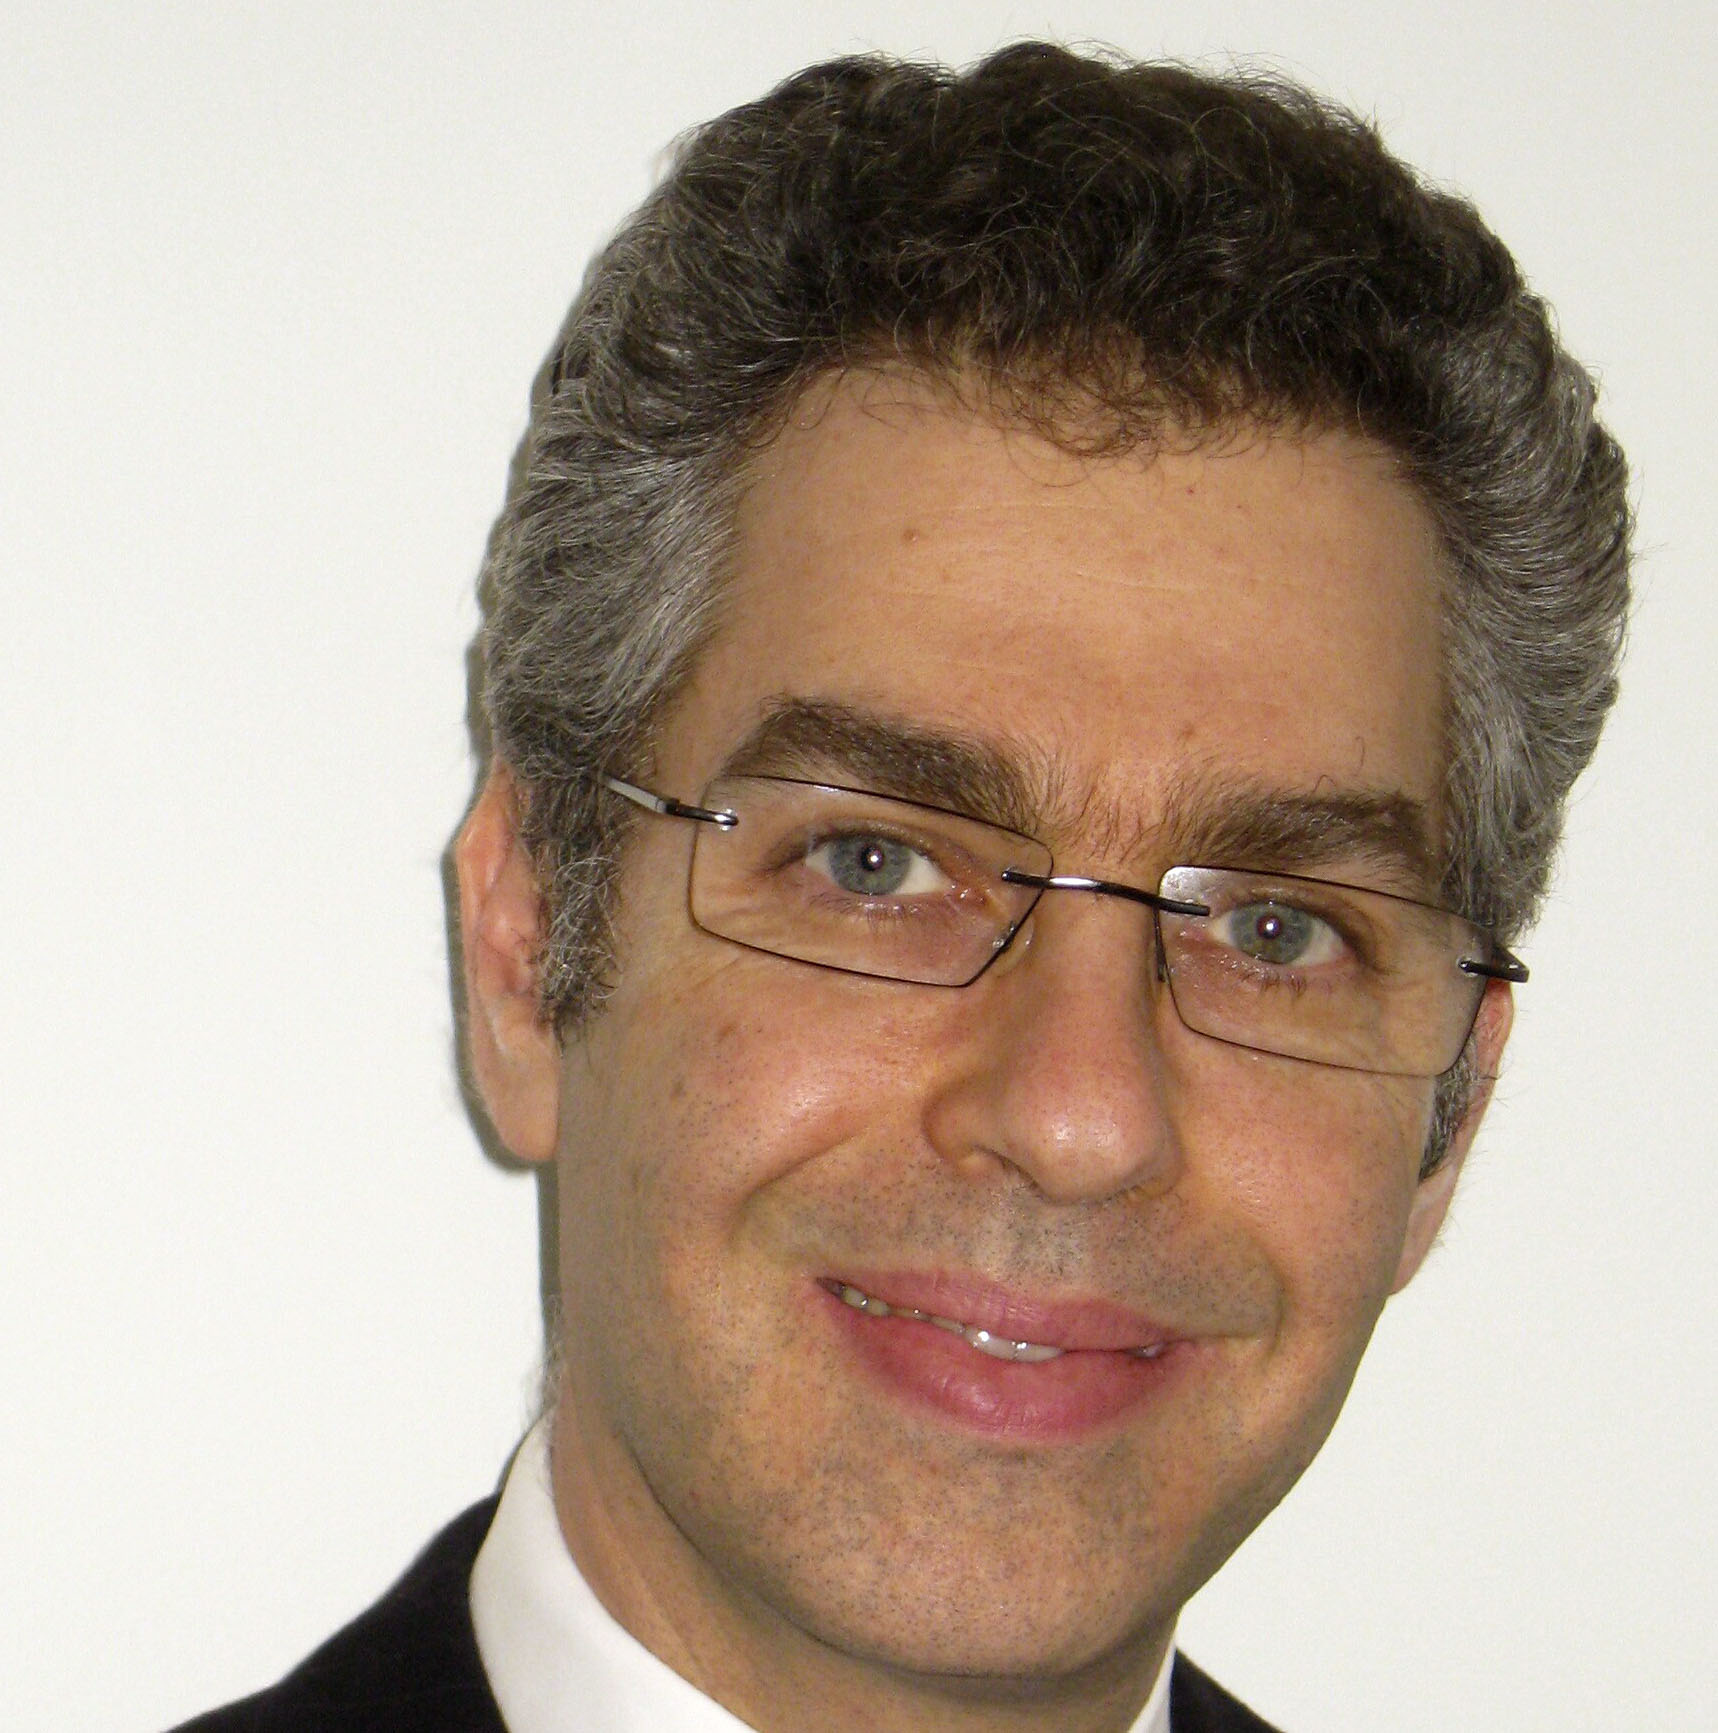 rabbi-jonathan-cohen-phd cropped